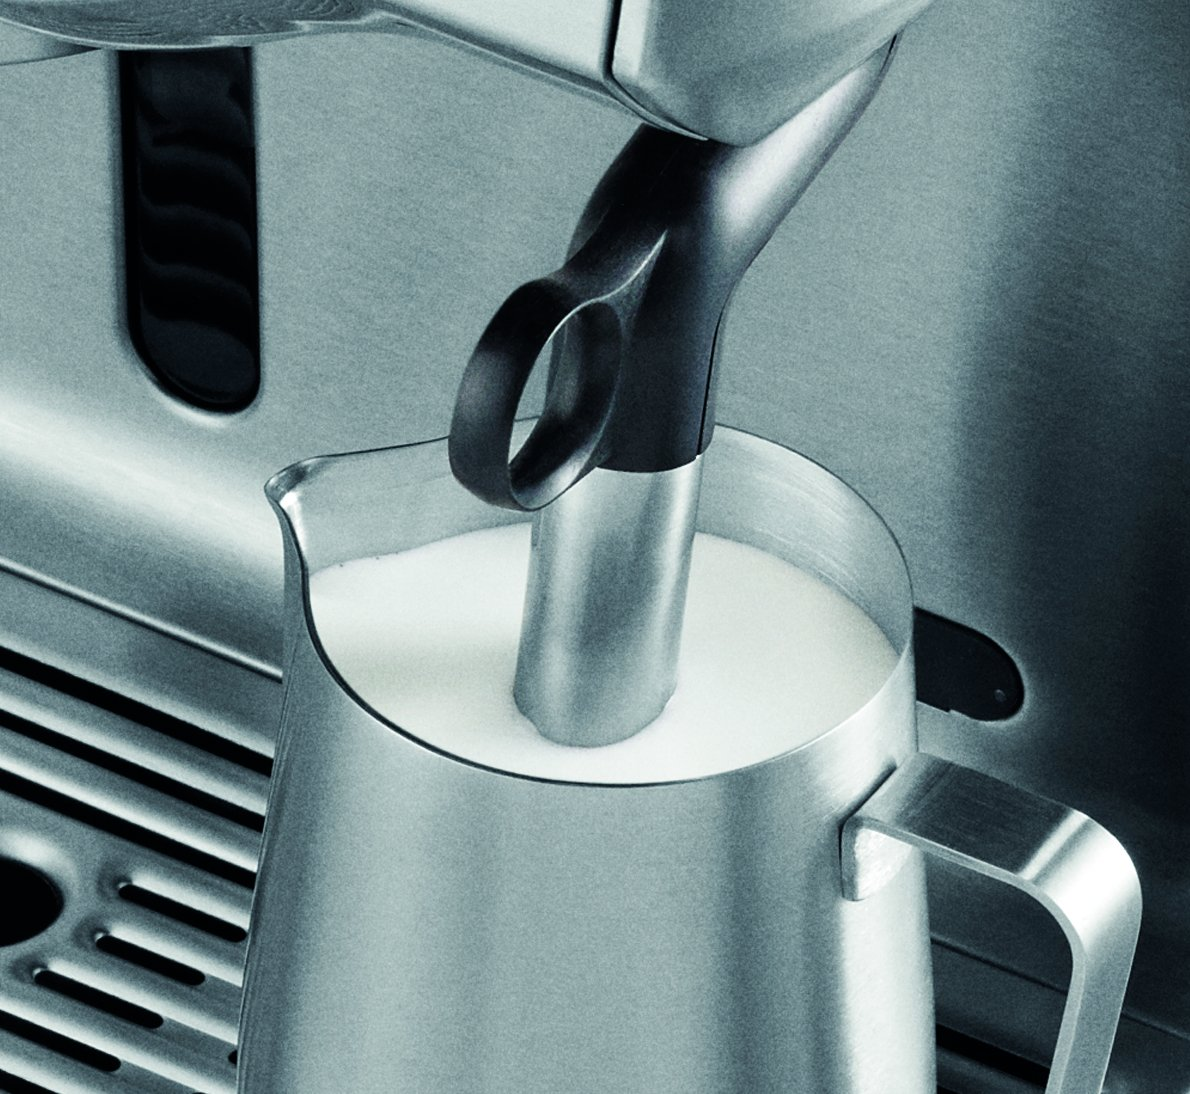 Breville the Oracle Independiente Totalmente automática Máquina espresso 2.5L Acero inoxidable - Cafetera (Independiente, Máquina espresso, 2,5 L, ...